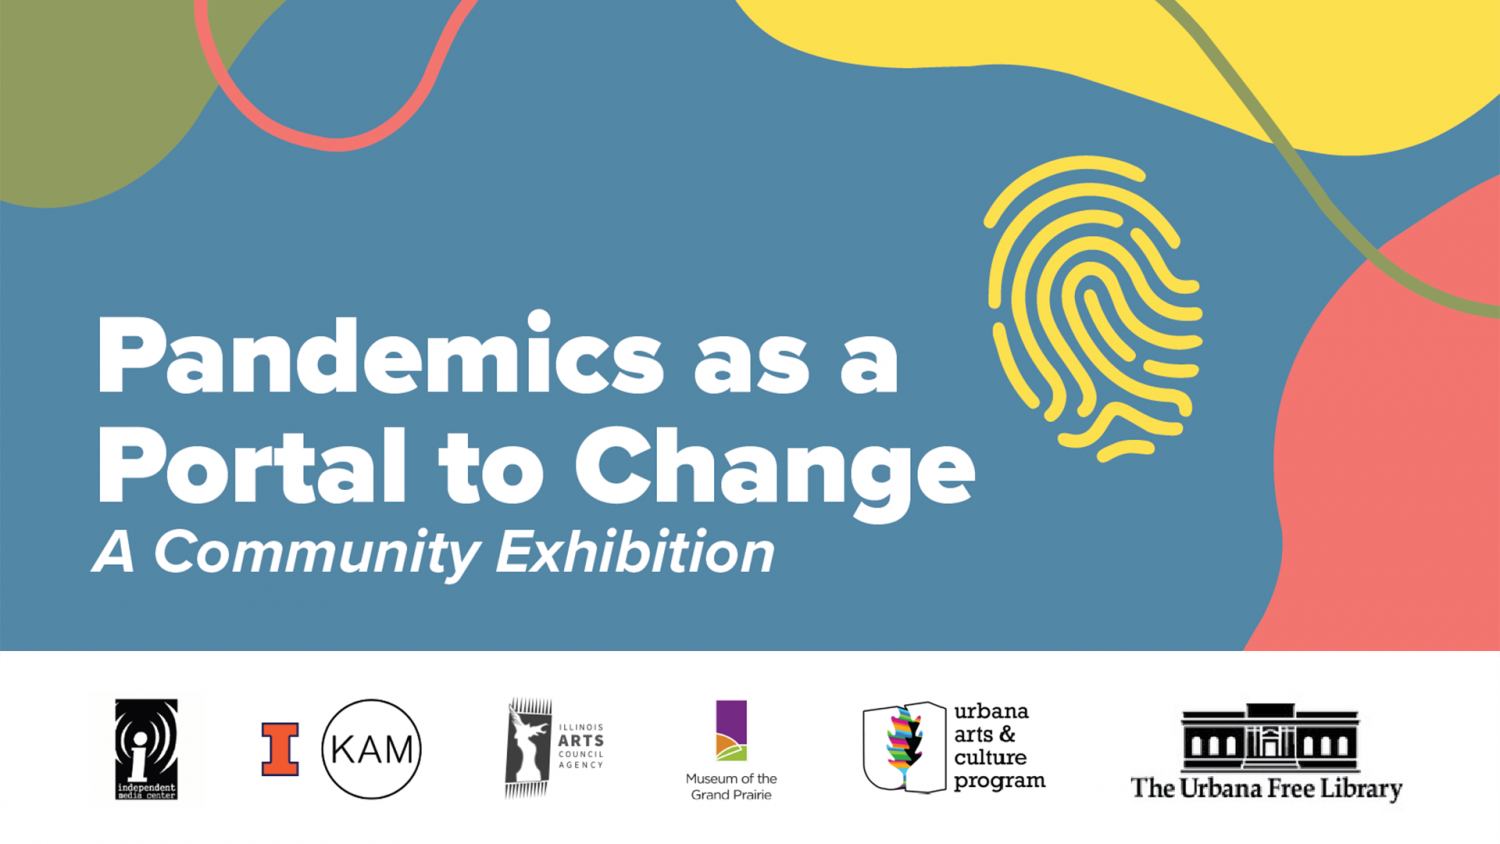 """multicolored graphic with white text on a blue background that says """"Pandemics as a Portal to Change: A Community Exhibition"""". Below the graphic there is a white bar with logos for the organizing partners."""